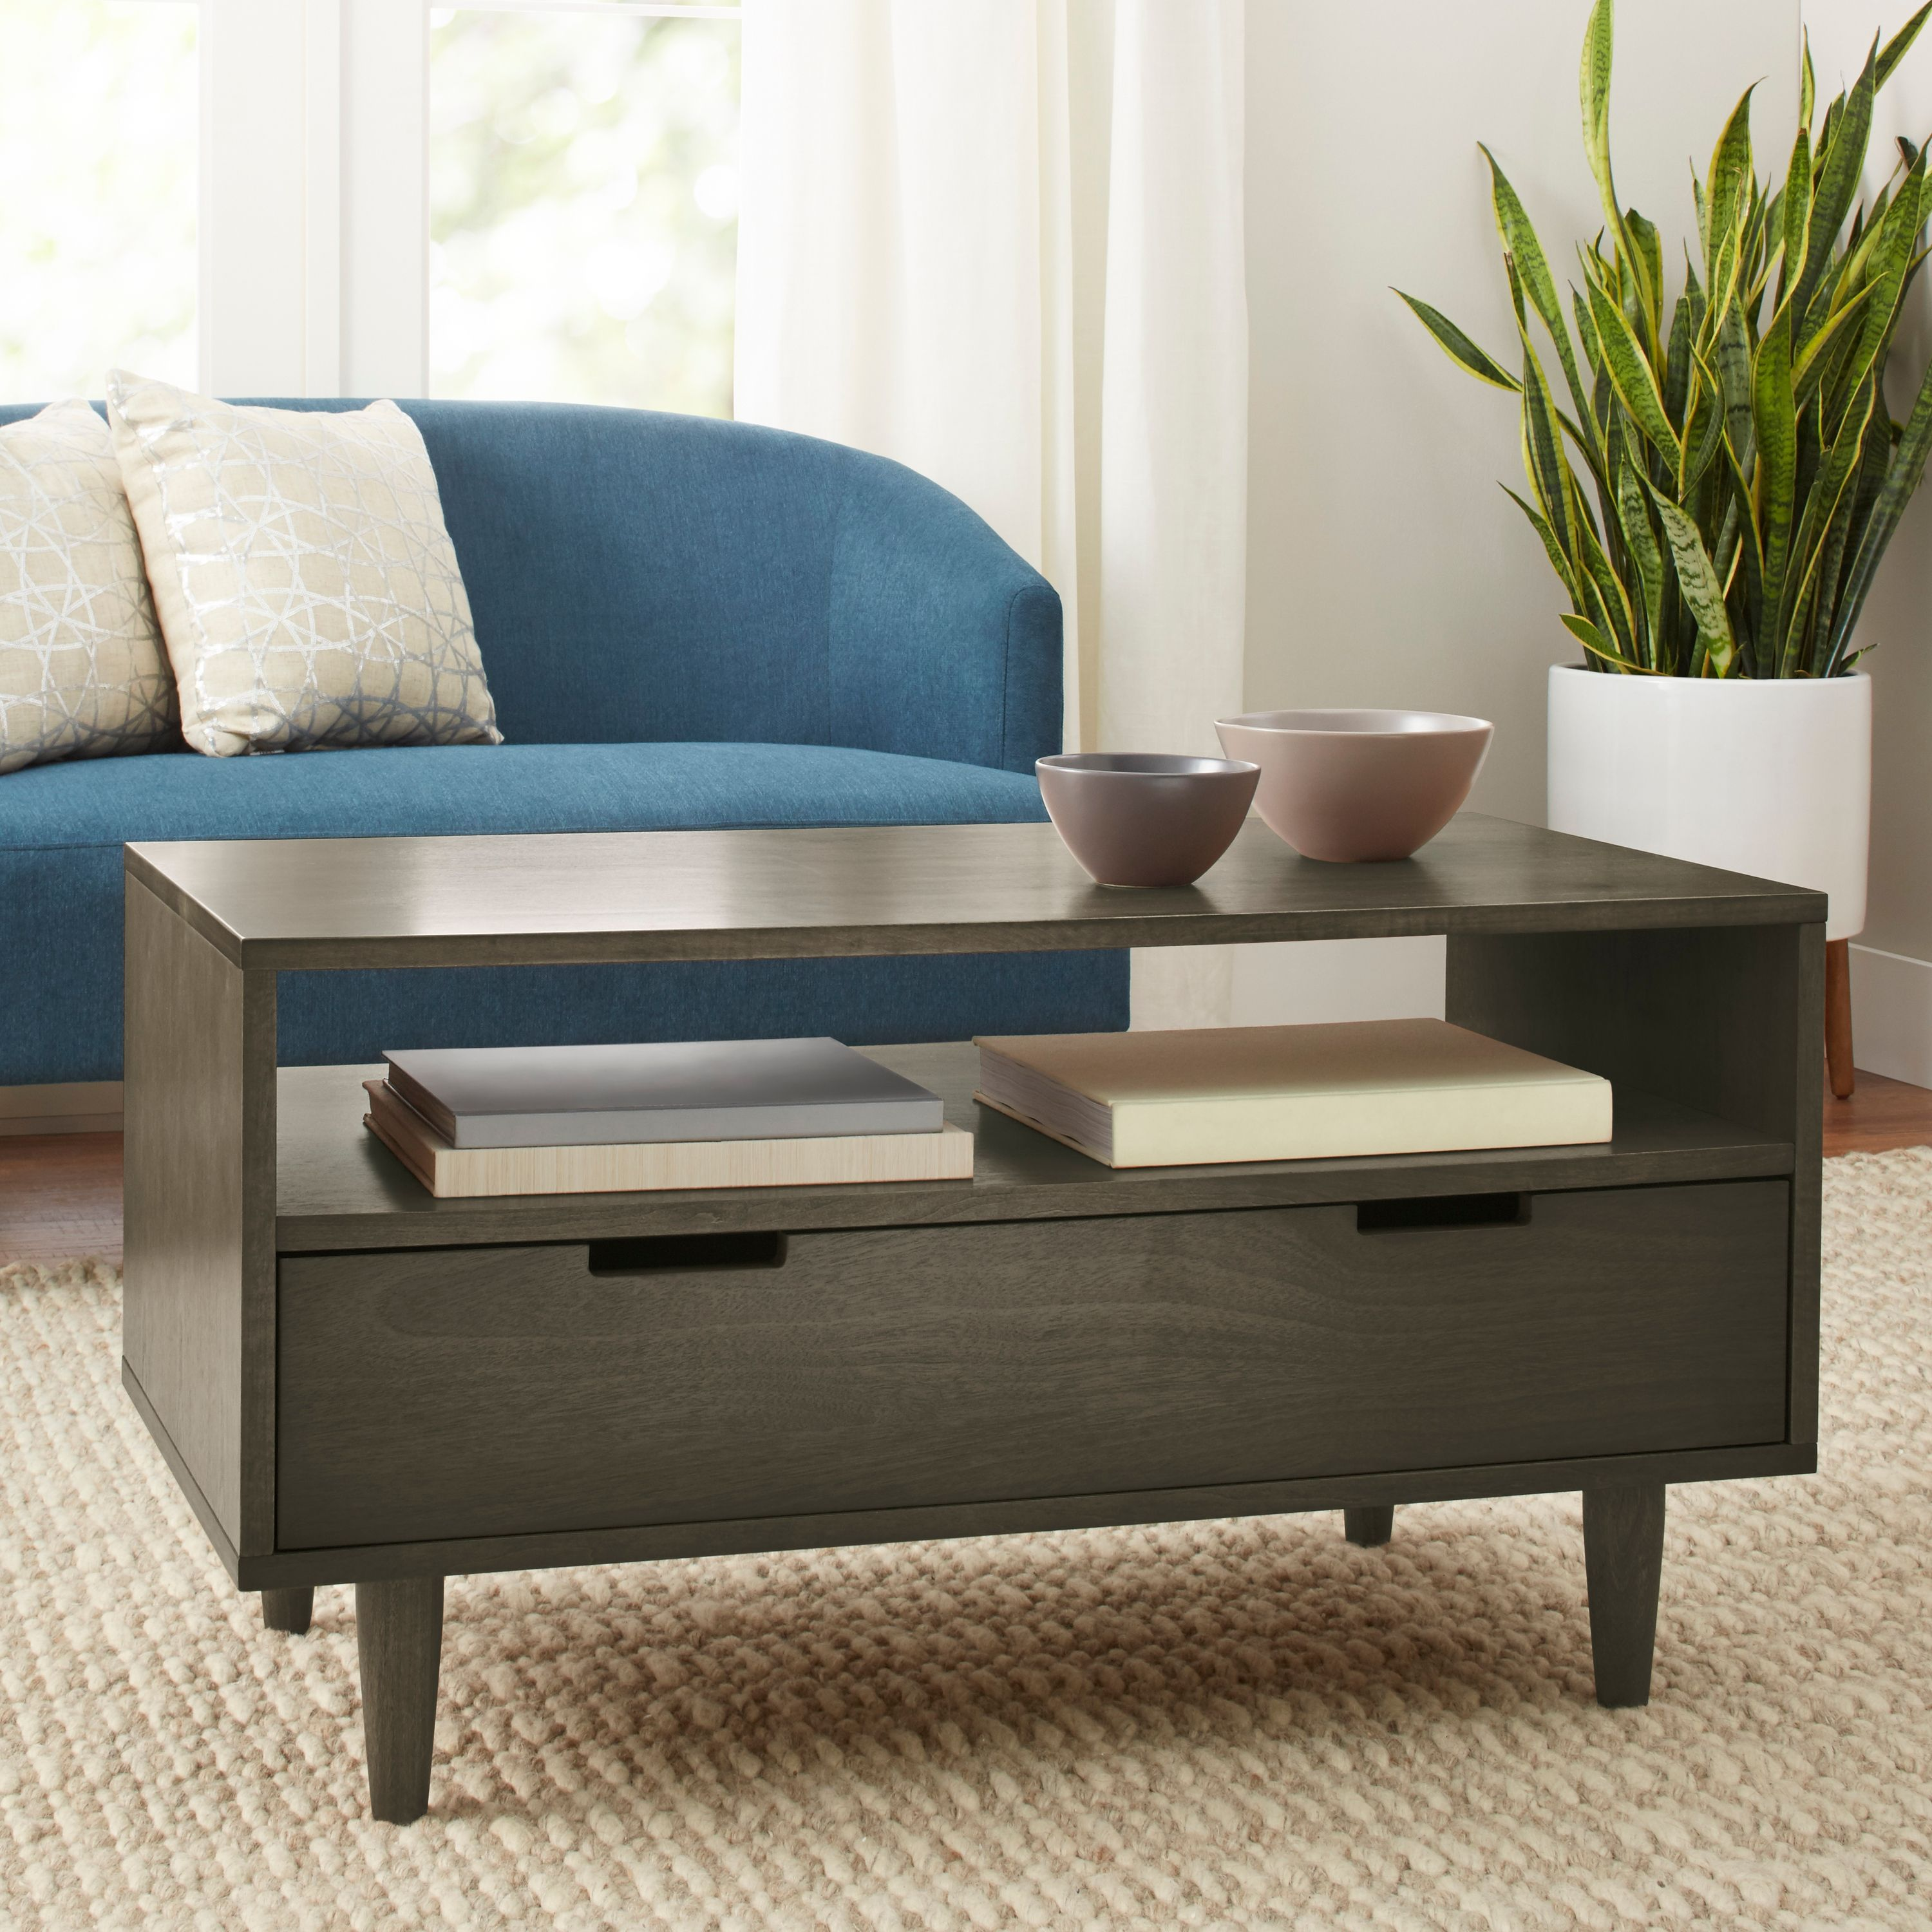 Modern Coffee Table With Storage Better Homes Gardens Flynn Mid Century Modern Coffee Table Pecan